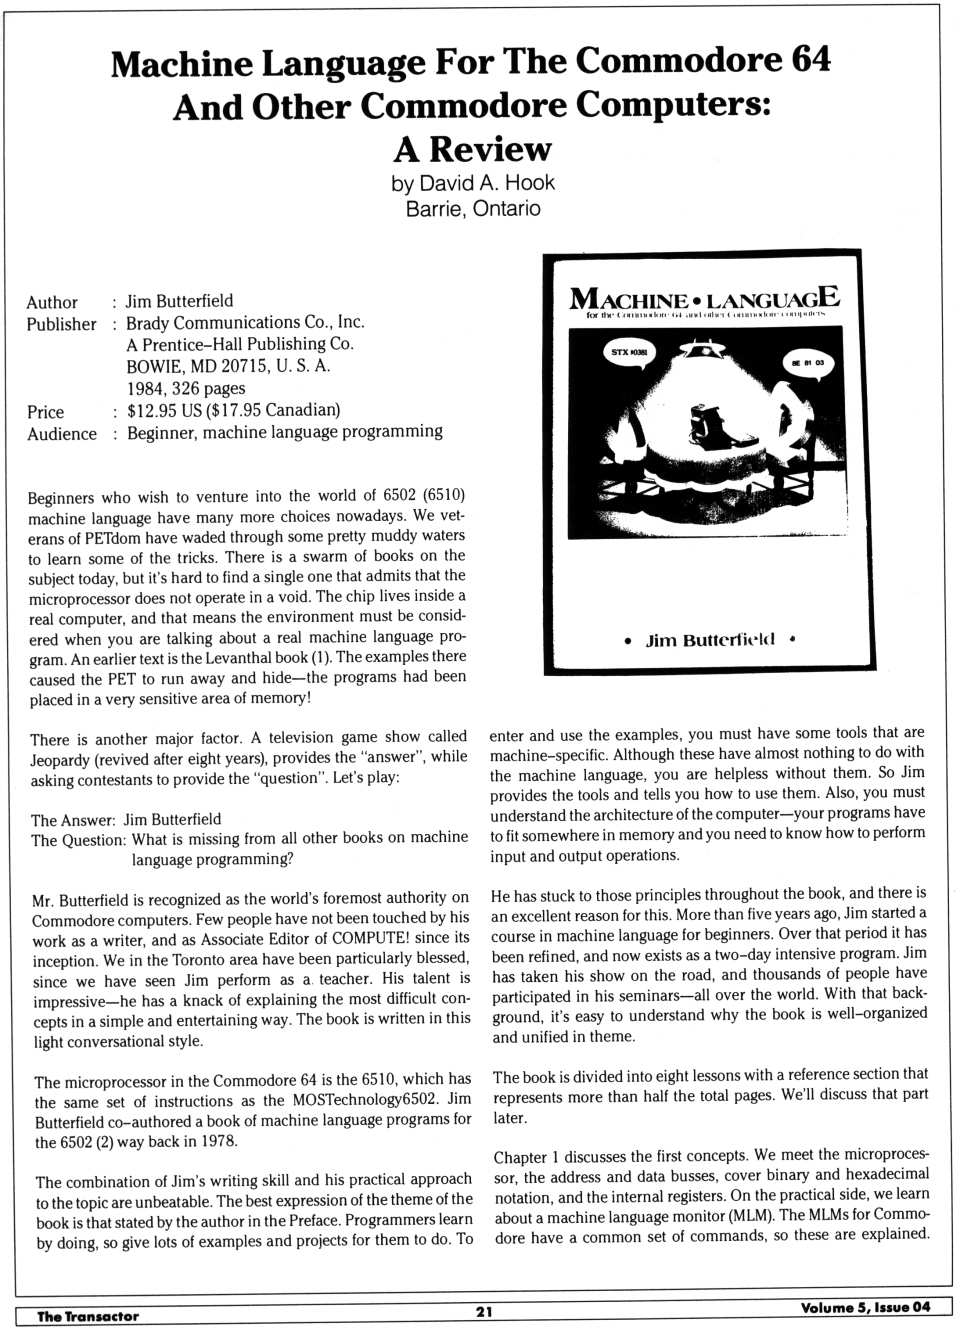 [Machine Language for The Commodore 64 and other Commodore Computers: A Review (1/2)]